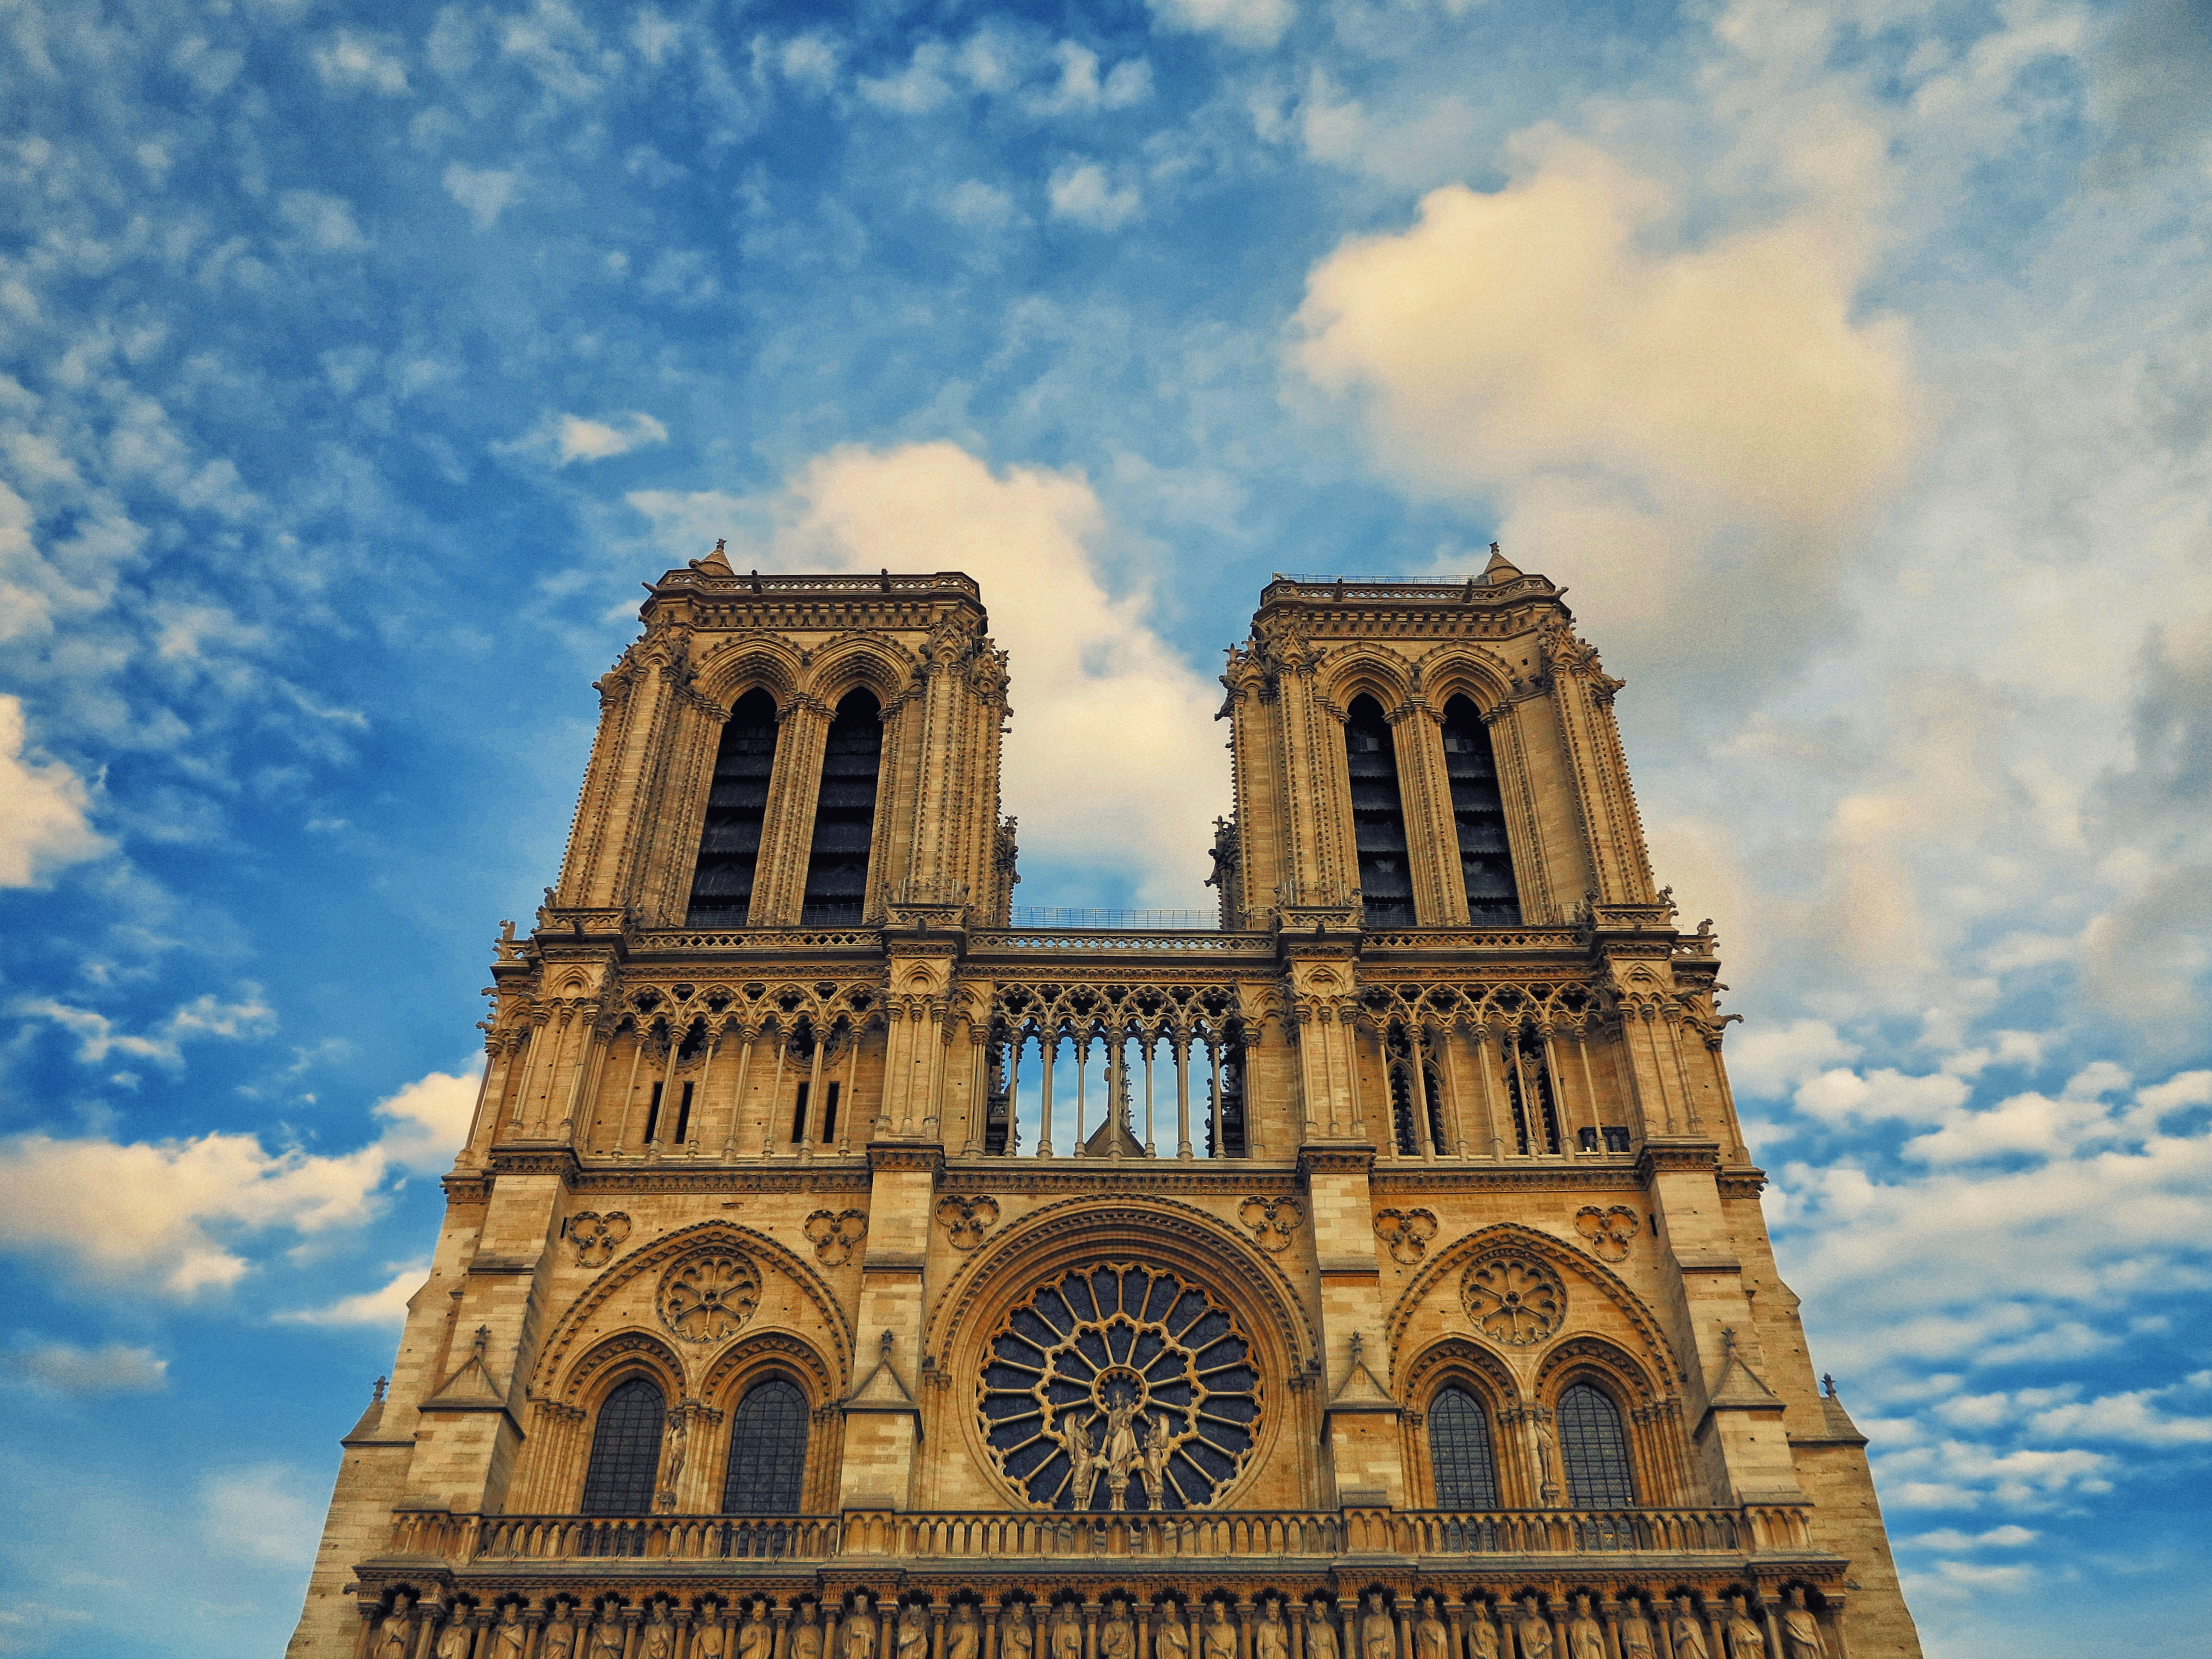 notre dame cathedral against a blue sky